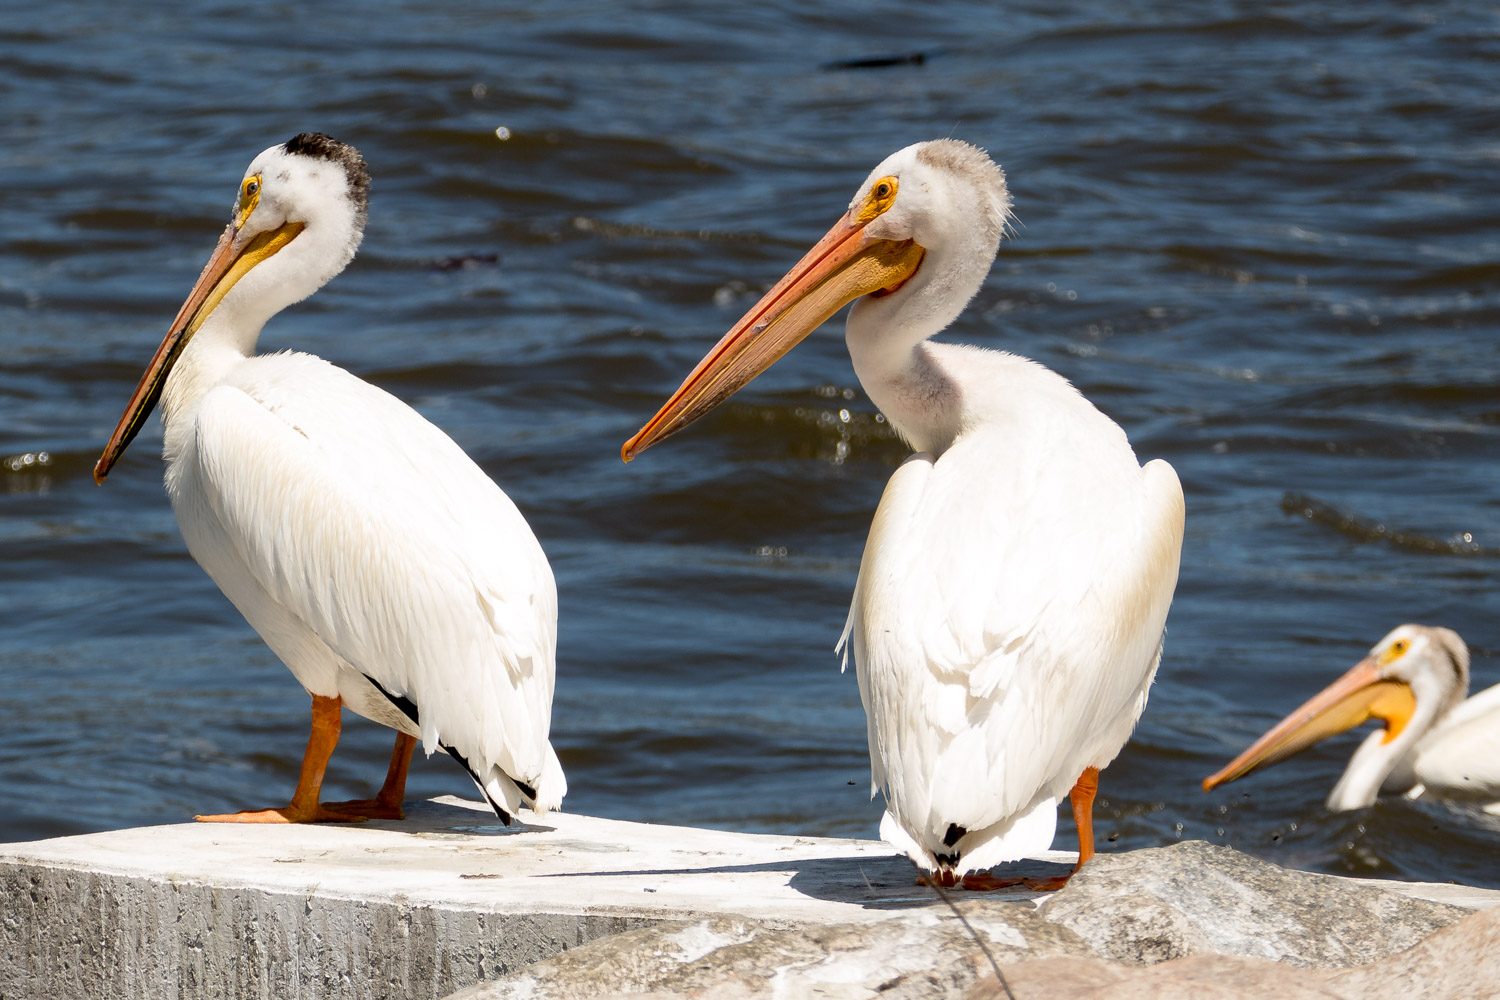 Pelicans on parade